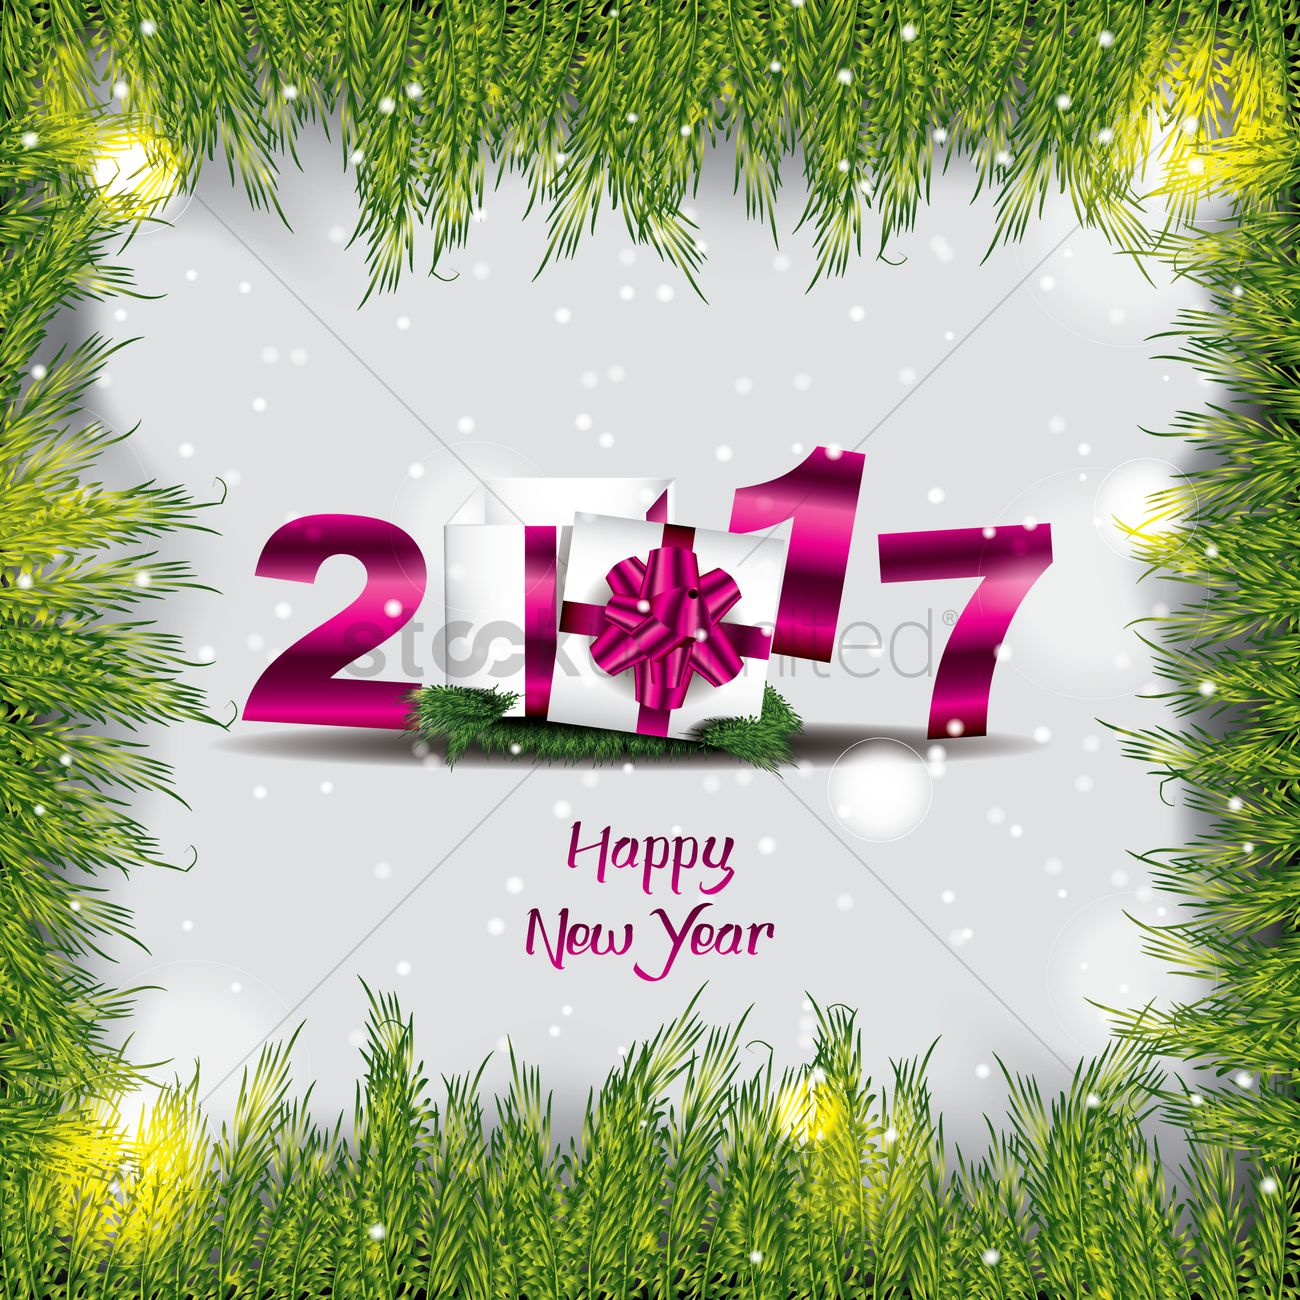 2017 happy new year greeting Vector Image - 1940238 | StockUnlimited